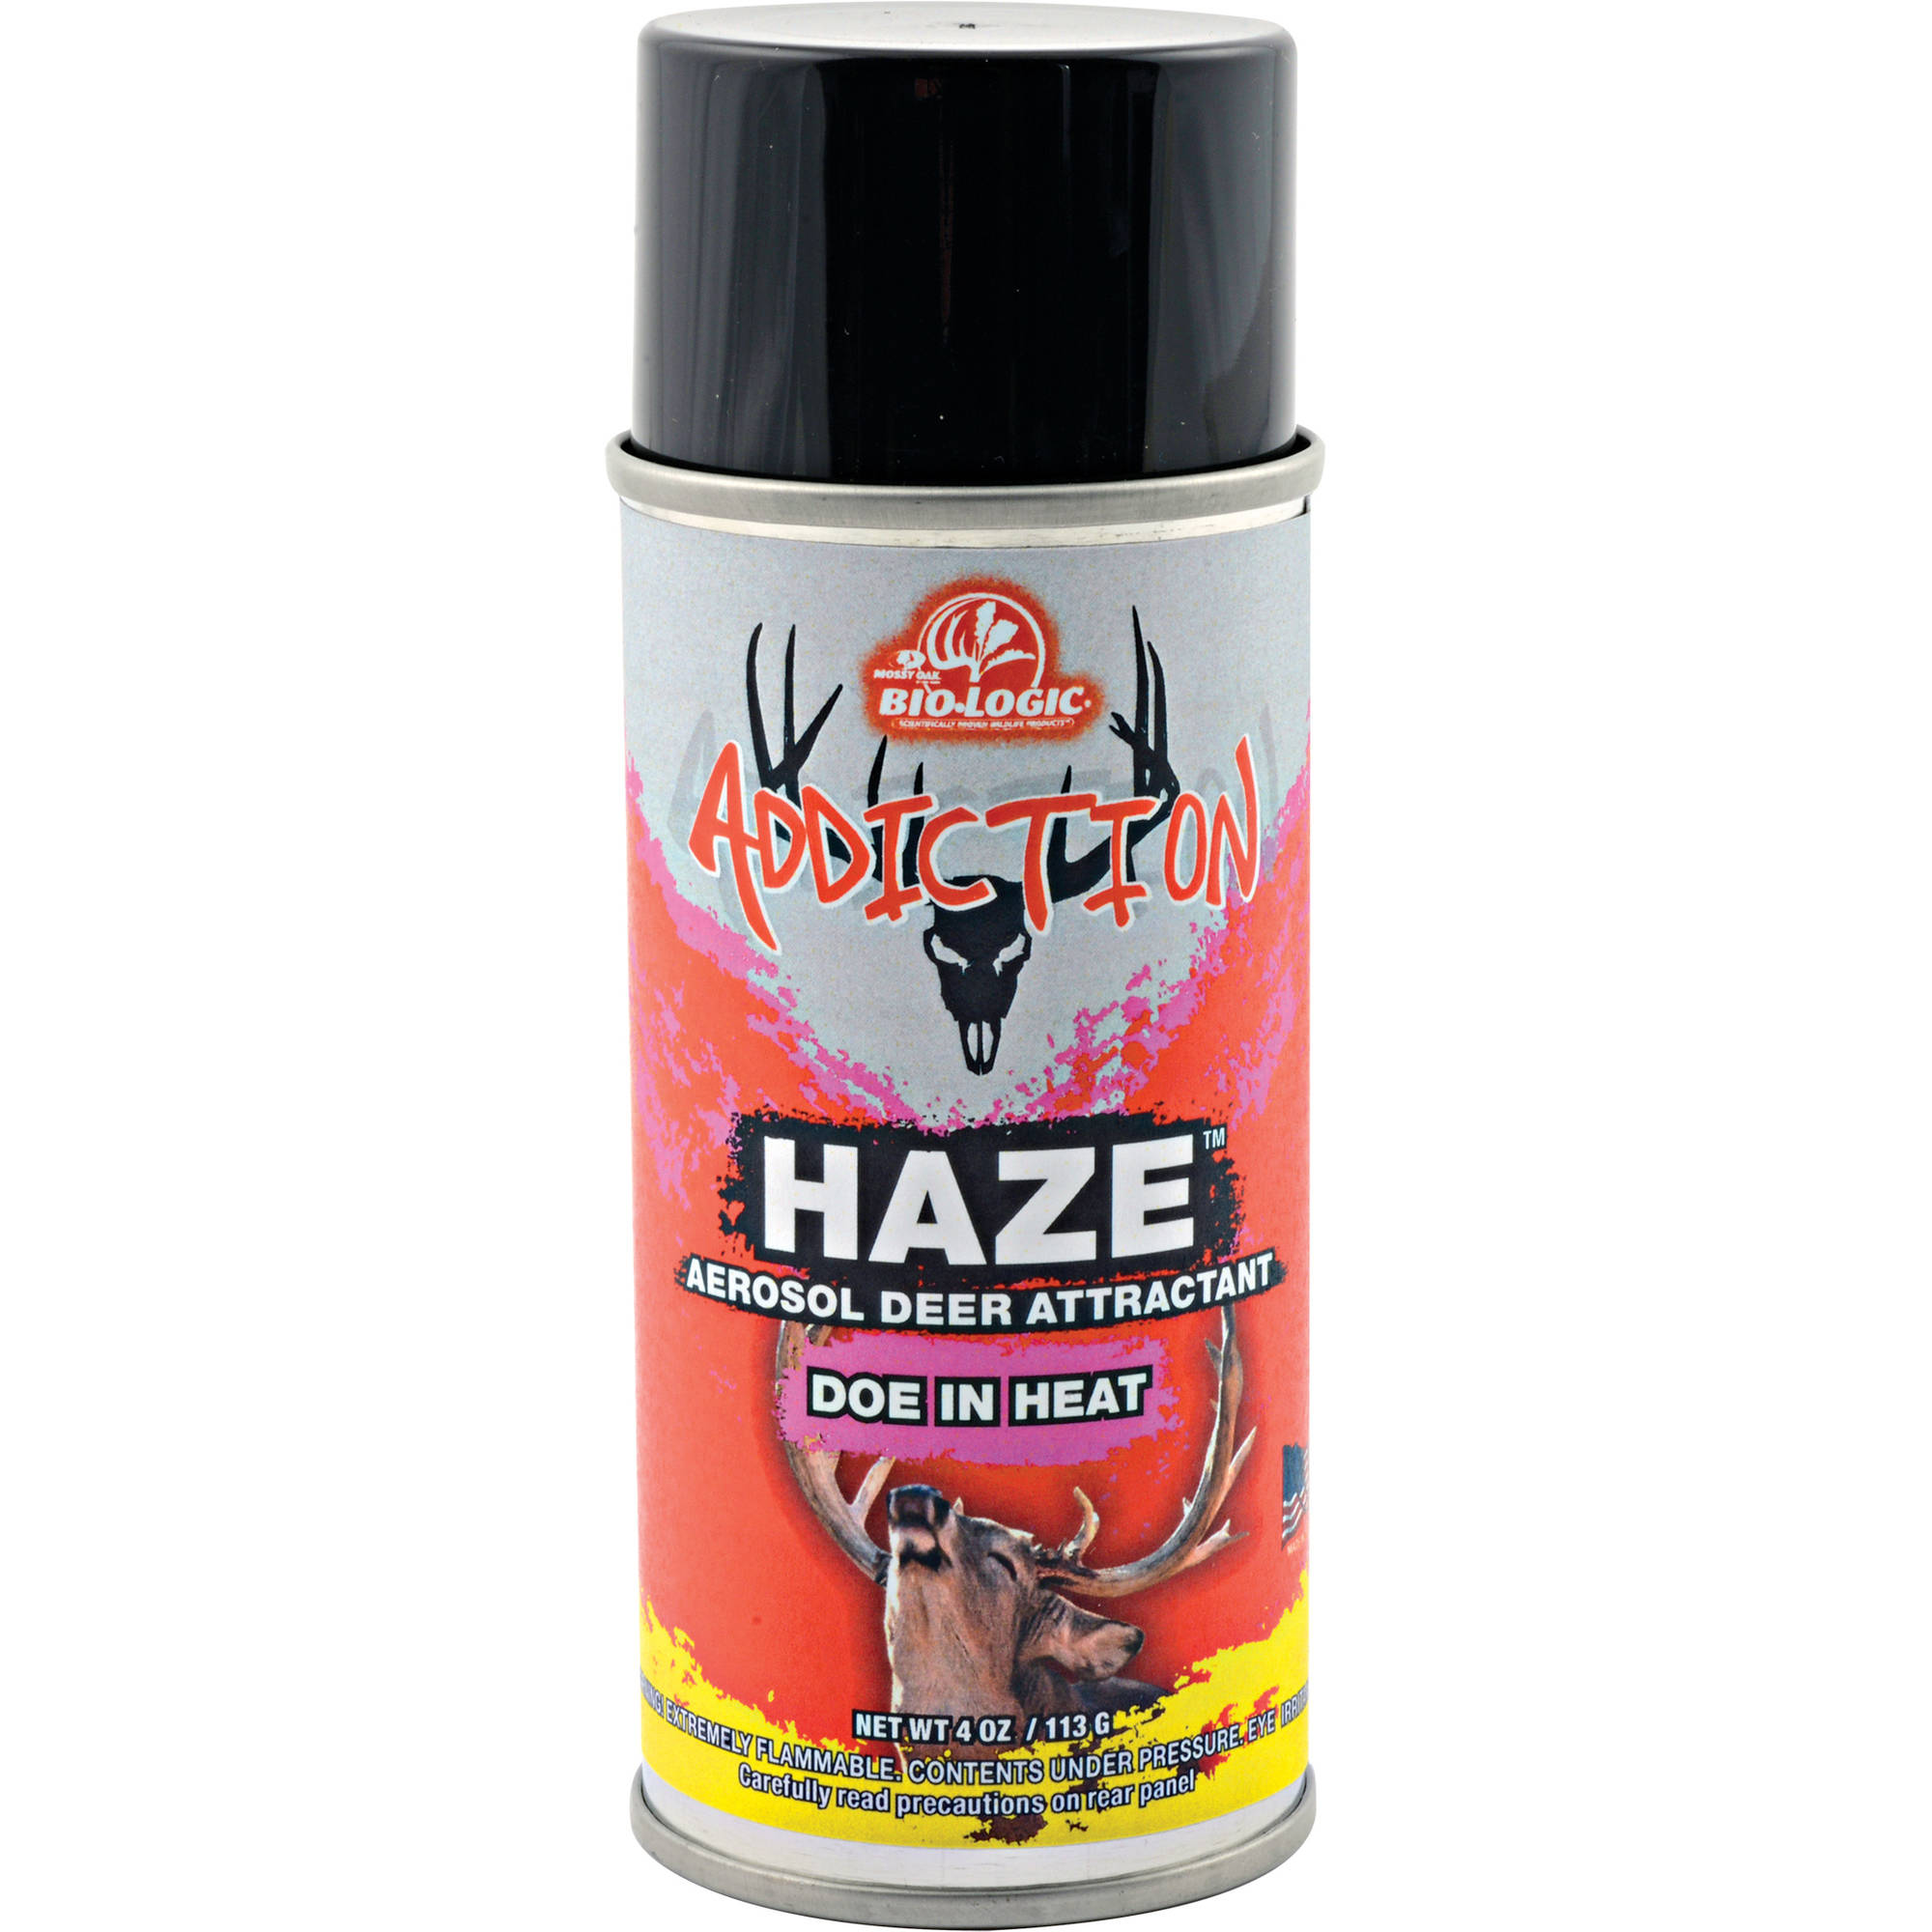 Mossy Oak BioLogic Addiction Haze 4-Ounce Aerosol Doe In Heat